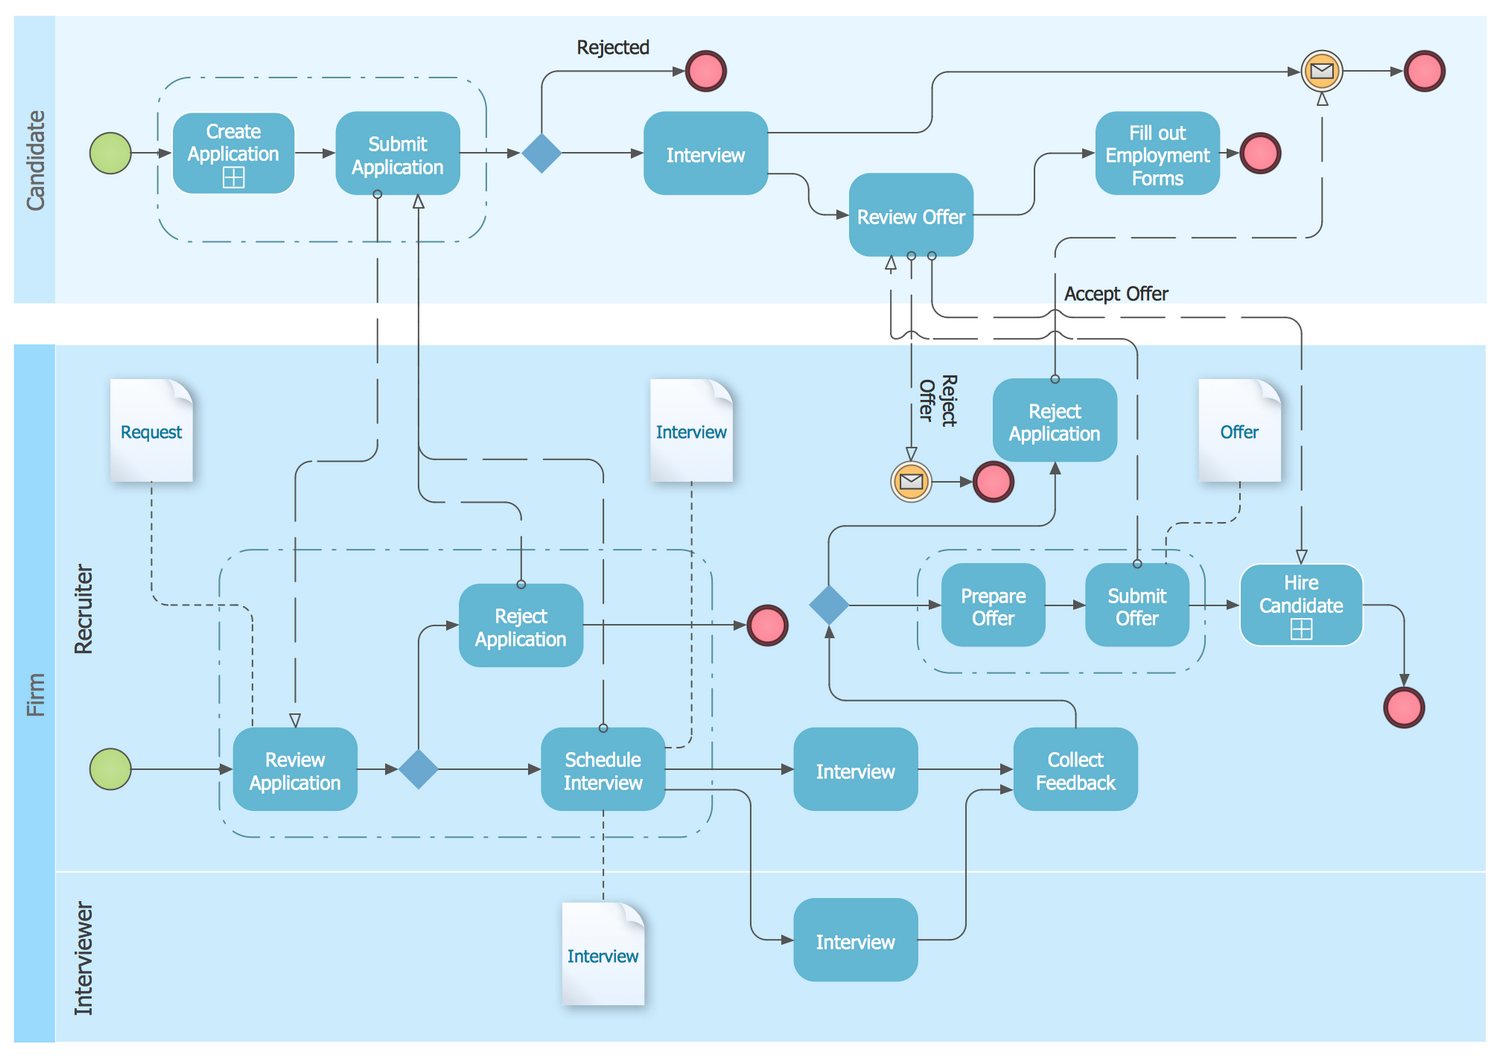 Hiring Process BPMN 1.2 Diagram